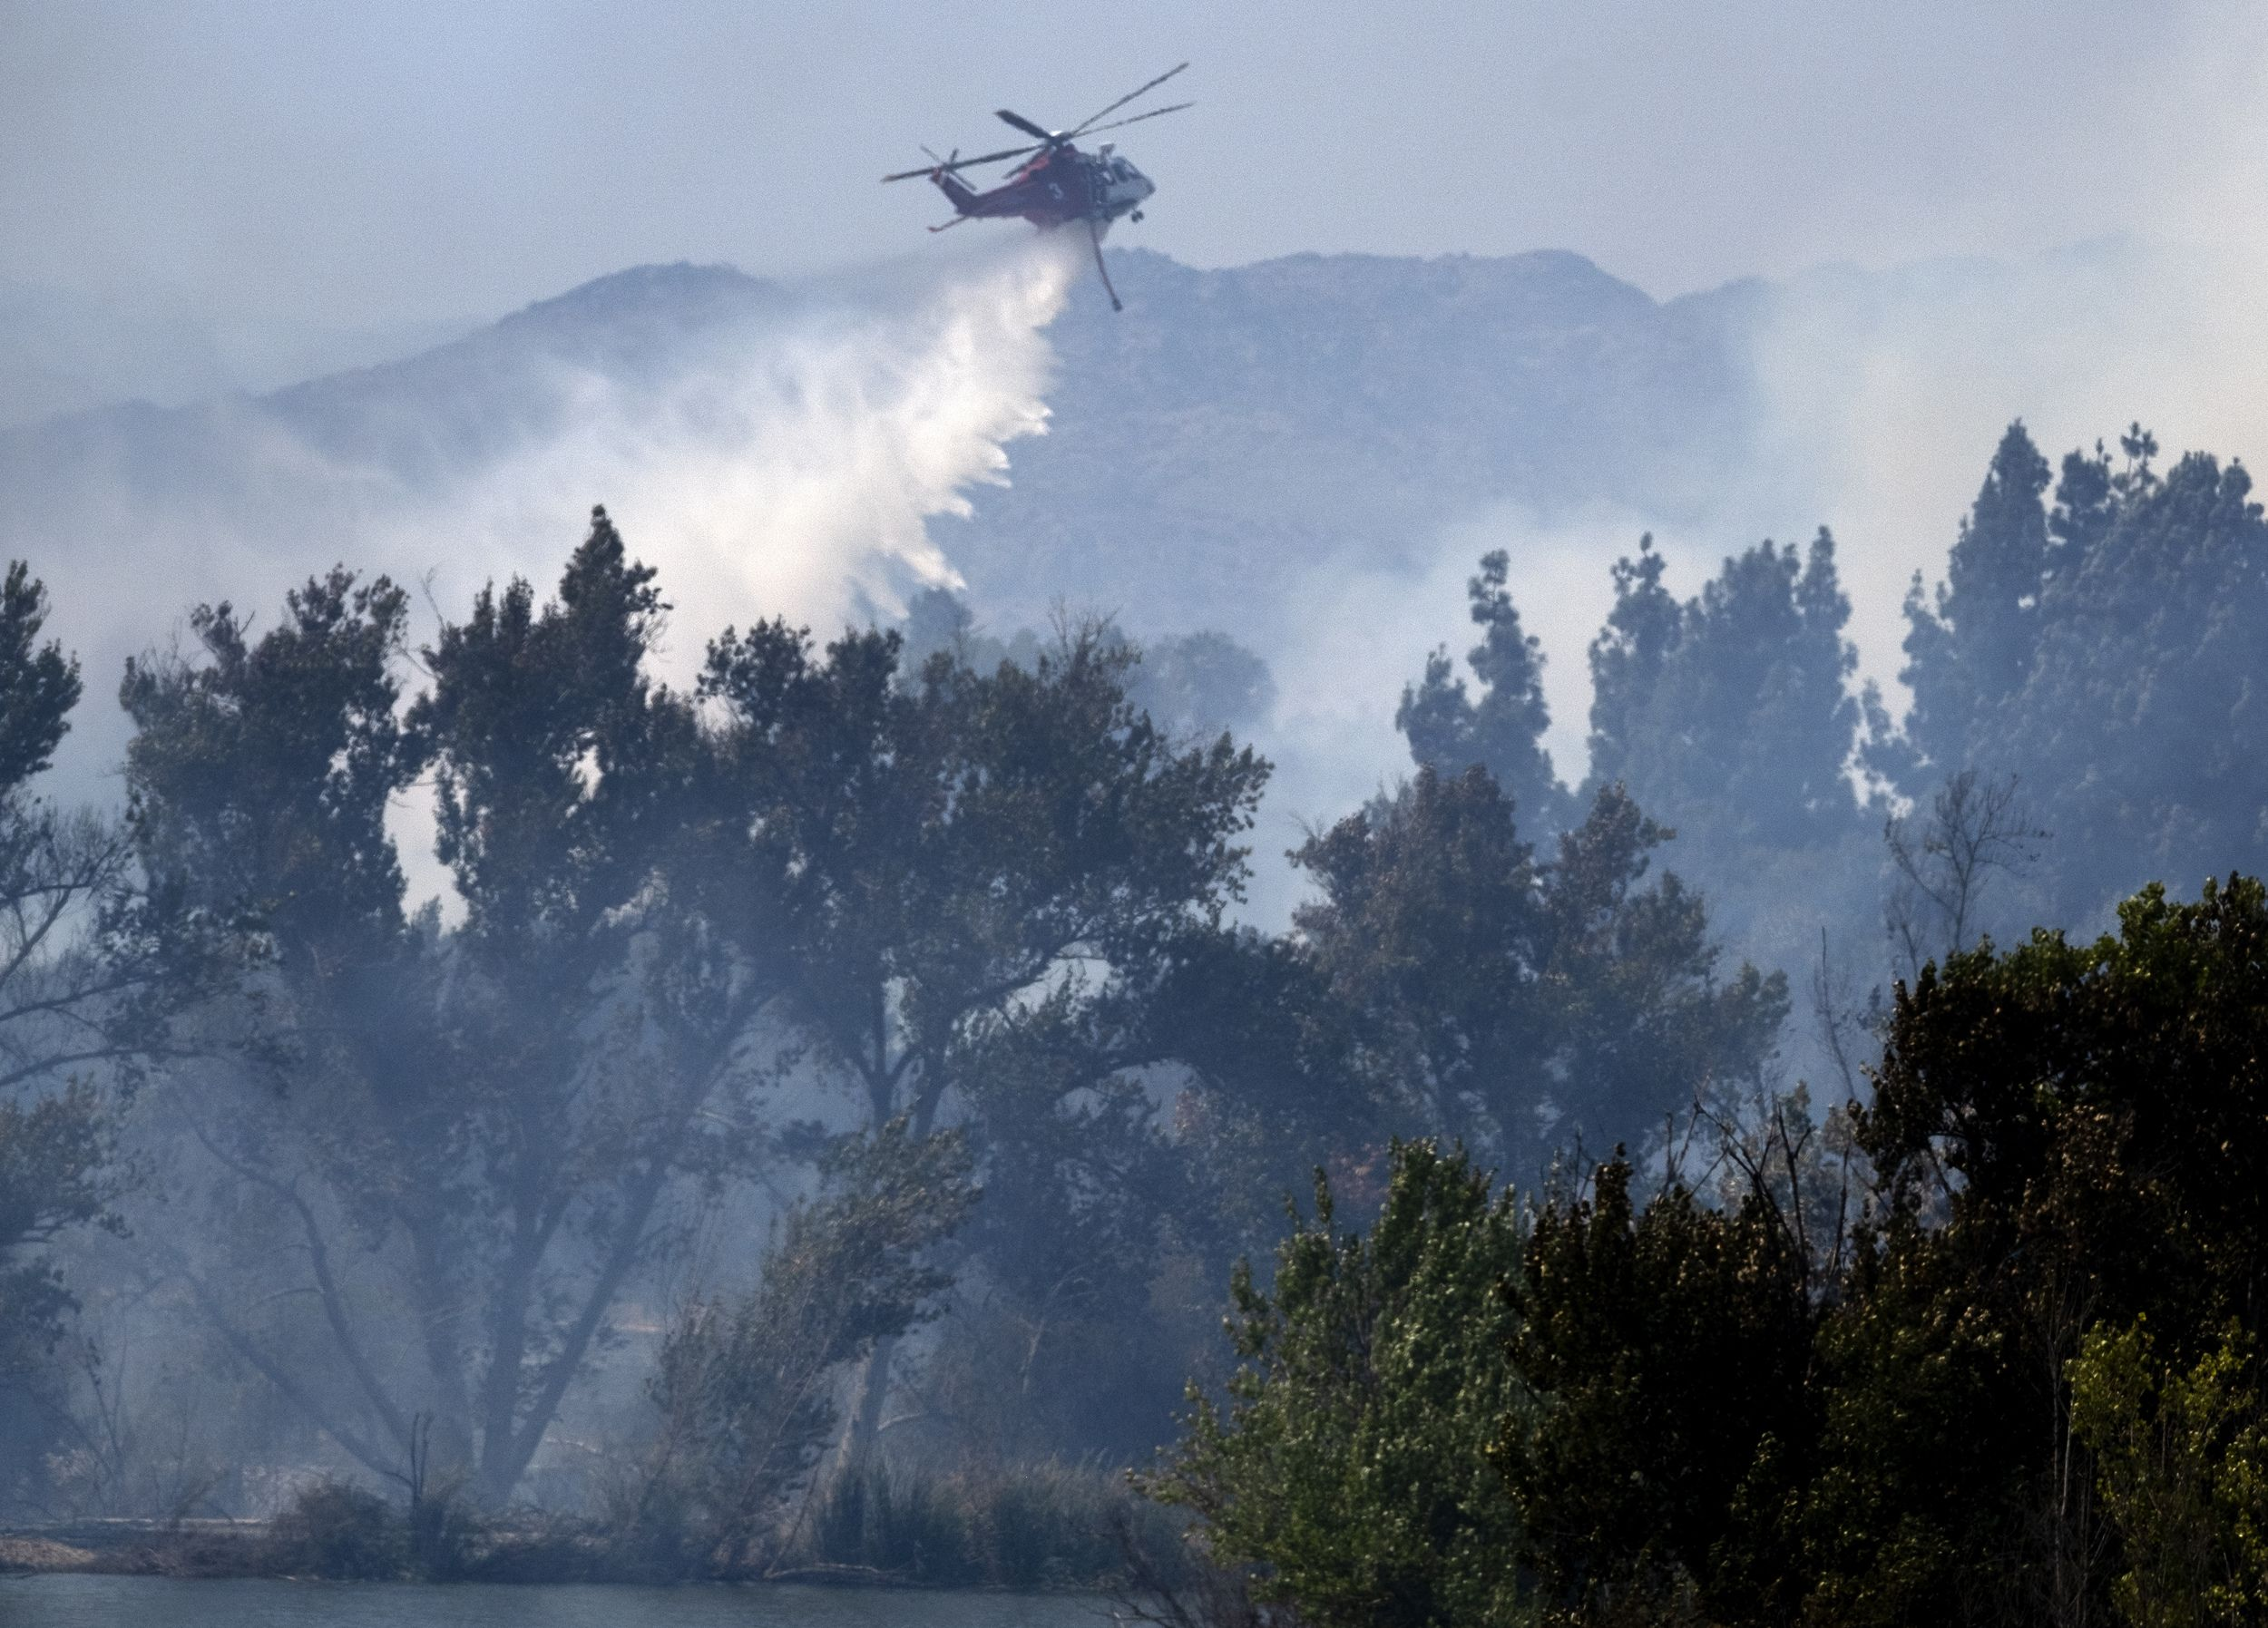 Sept 06 2020 A Los Angeles Fire Department Helicopter Makes A Water Drop Over A Brush Fire In The In 2020 California Wildfires Los Angeles Fire Department Brush Fire